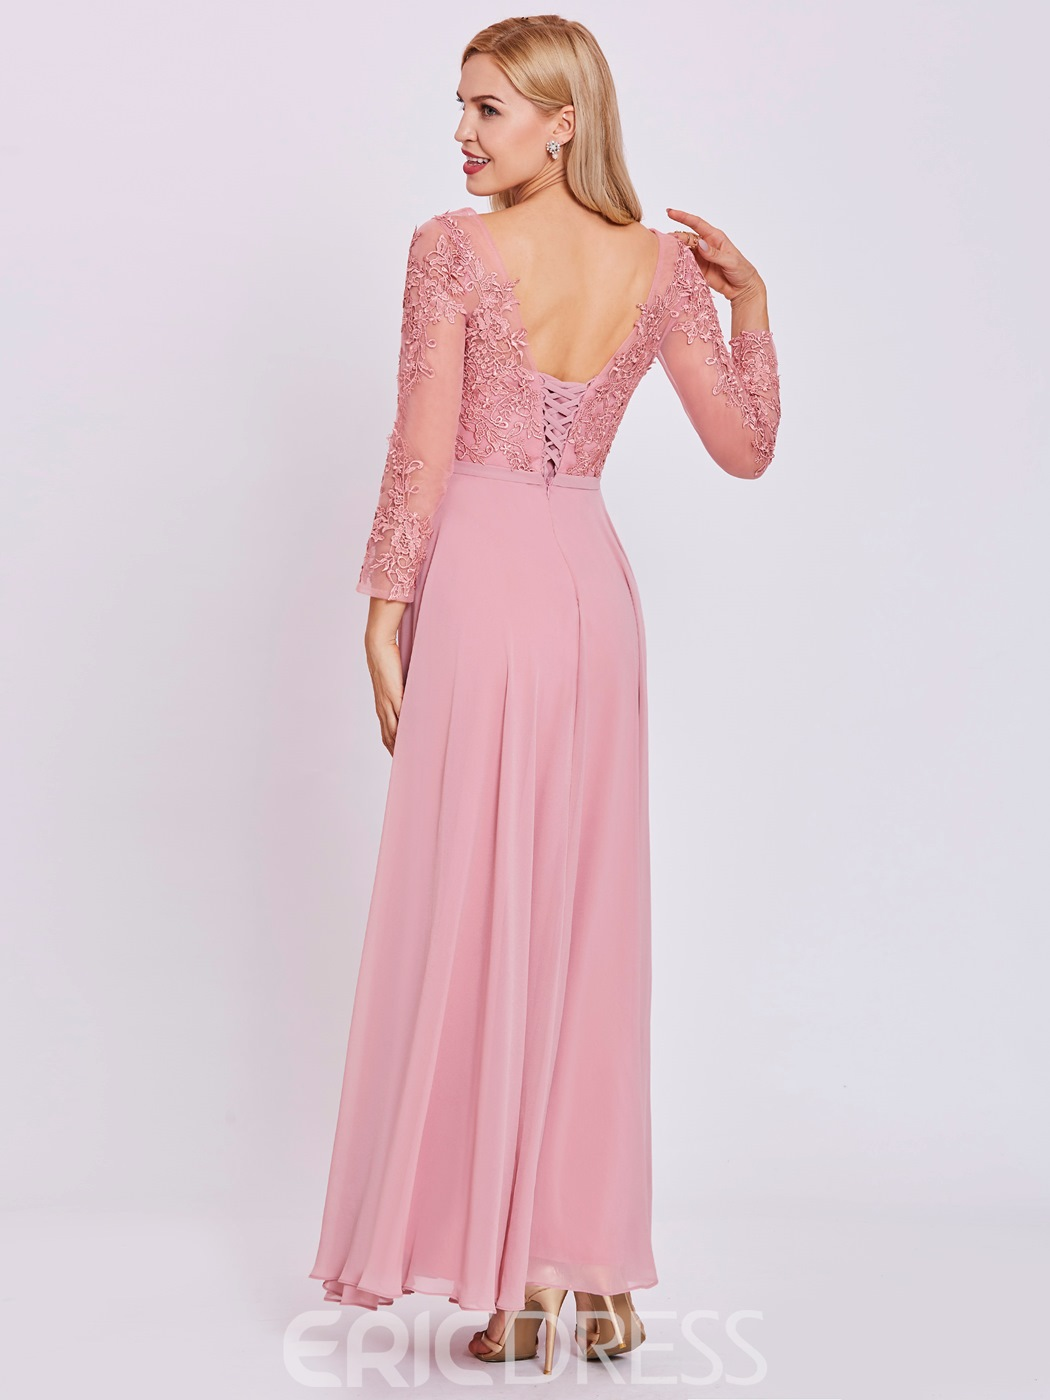 Ericdress Scoop Neck Lace-Up Appliques A Line Evening Dress